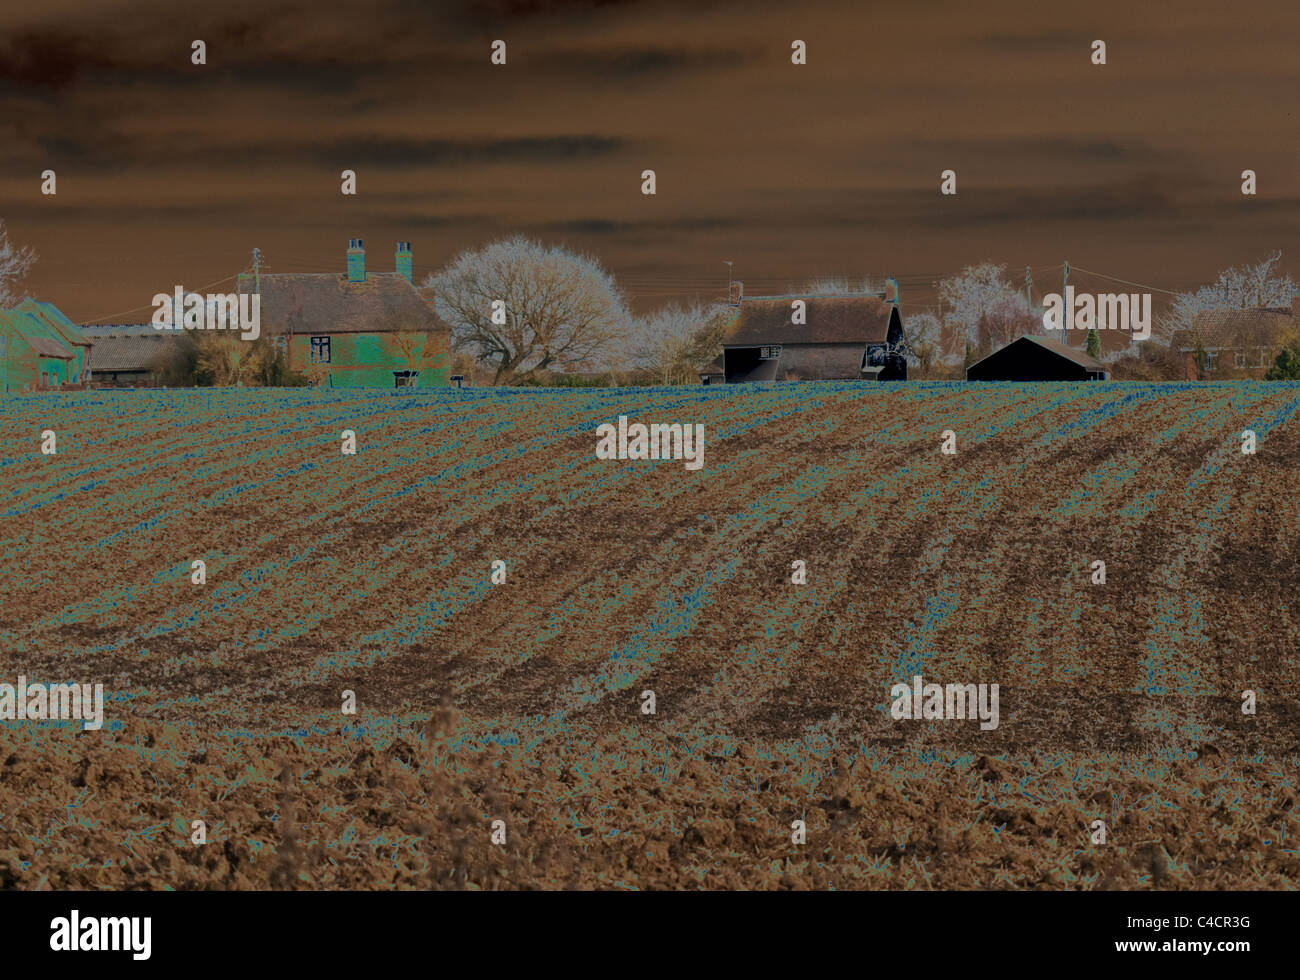 Solarised photograph of a ploughed field and farm buildings - Stock Image